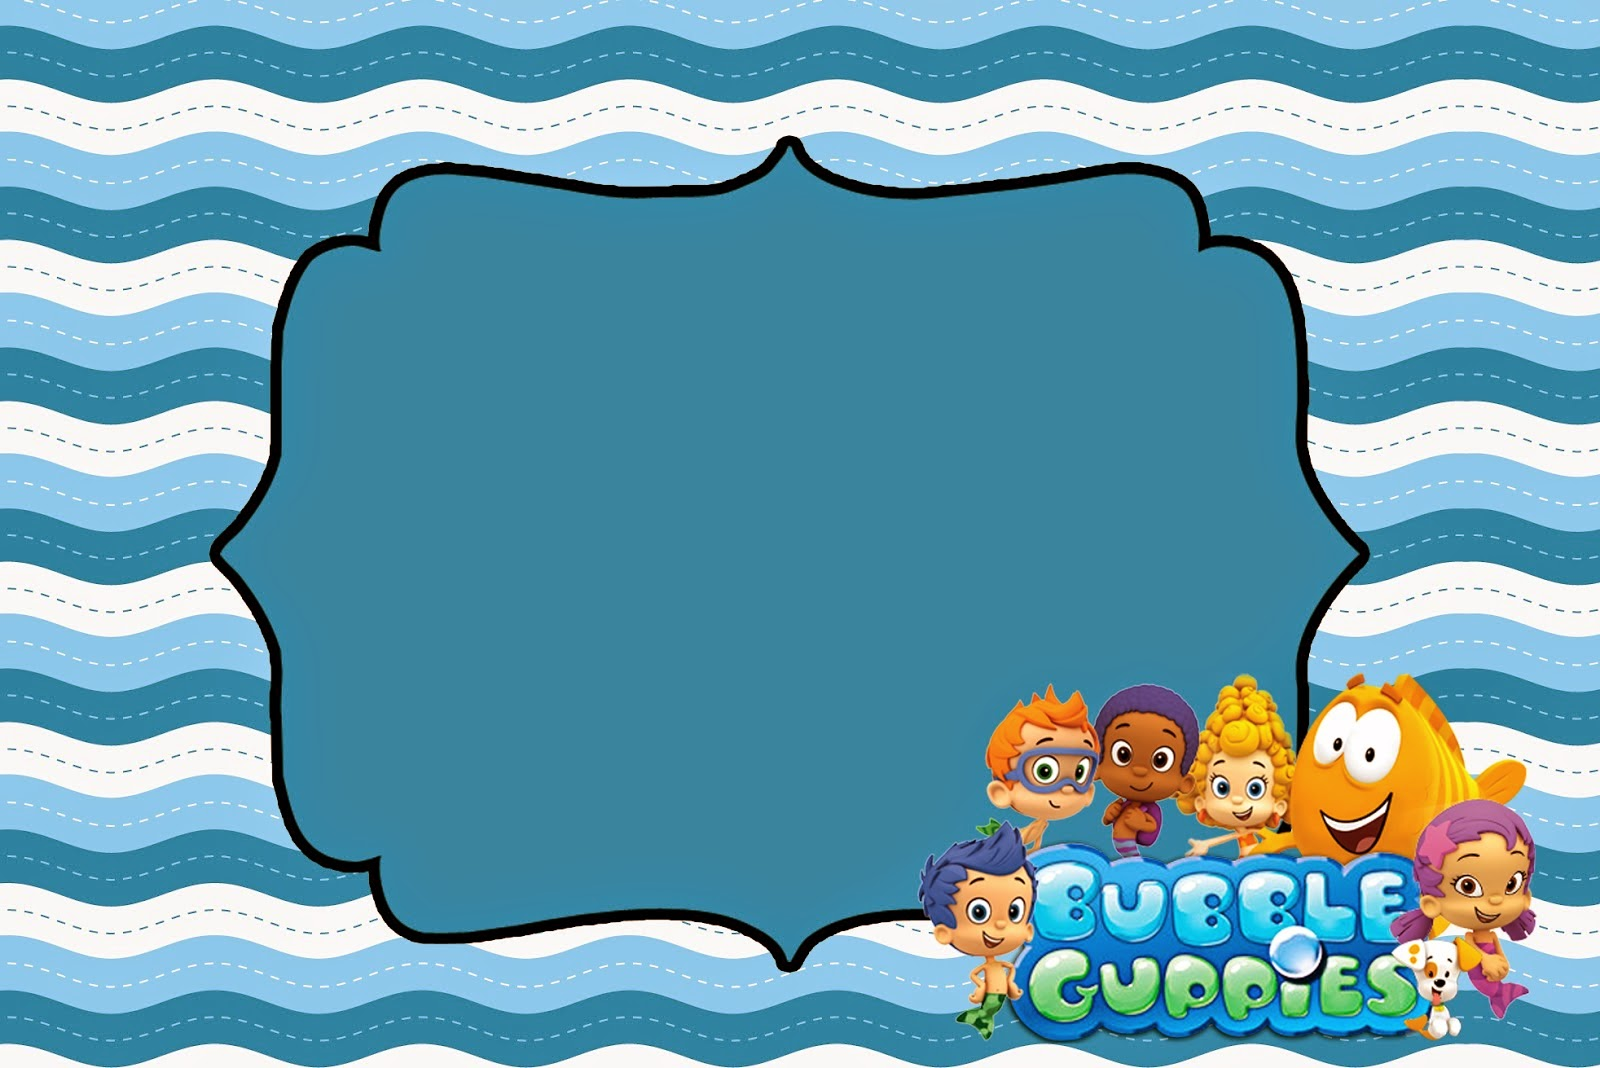 Bubble Guppies Free Printable Invitations